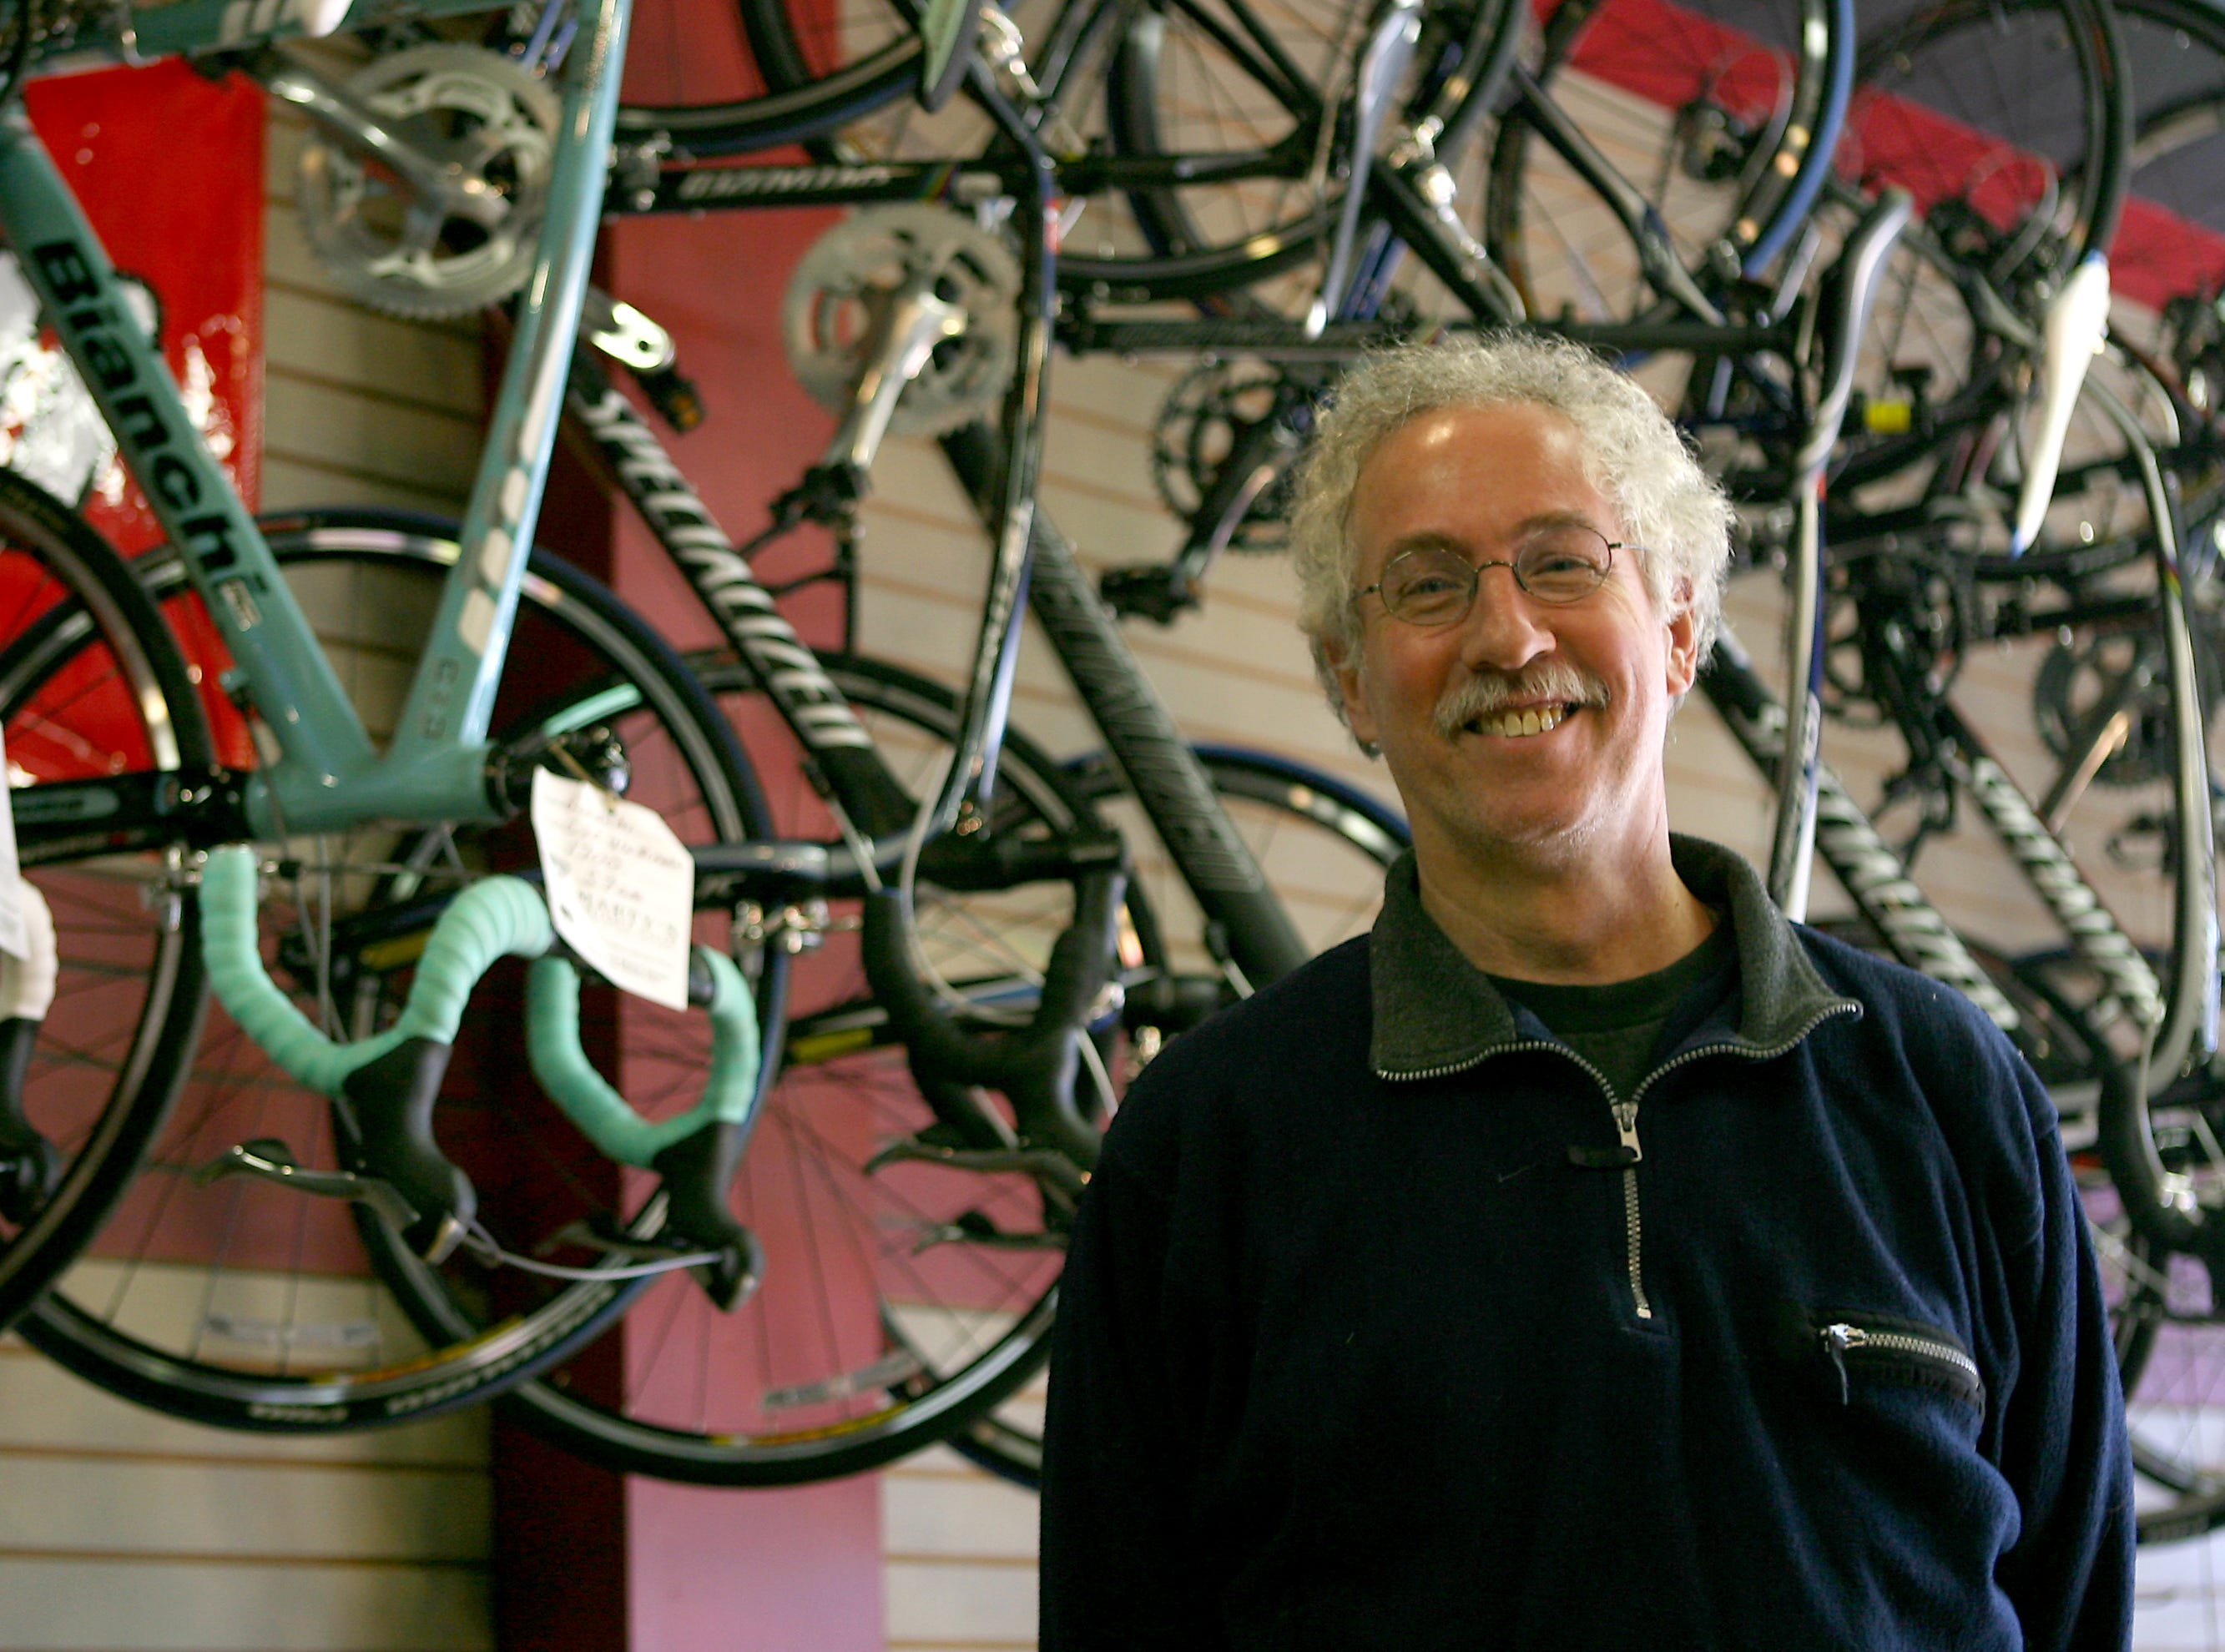 Morristown -- Feb 24, 2009 -- Marty Epstein, the owner of Marty's Reliable Cycle, poses for a portrait inside of his store.